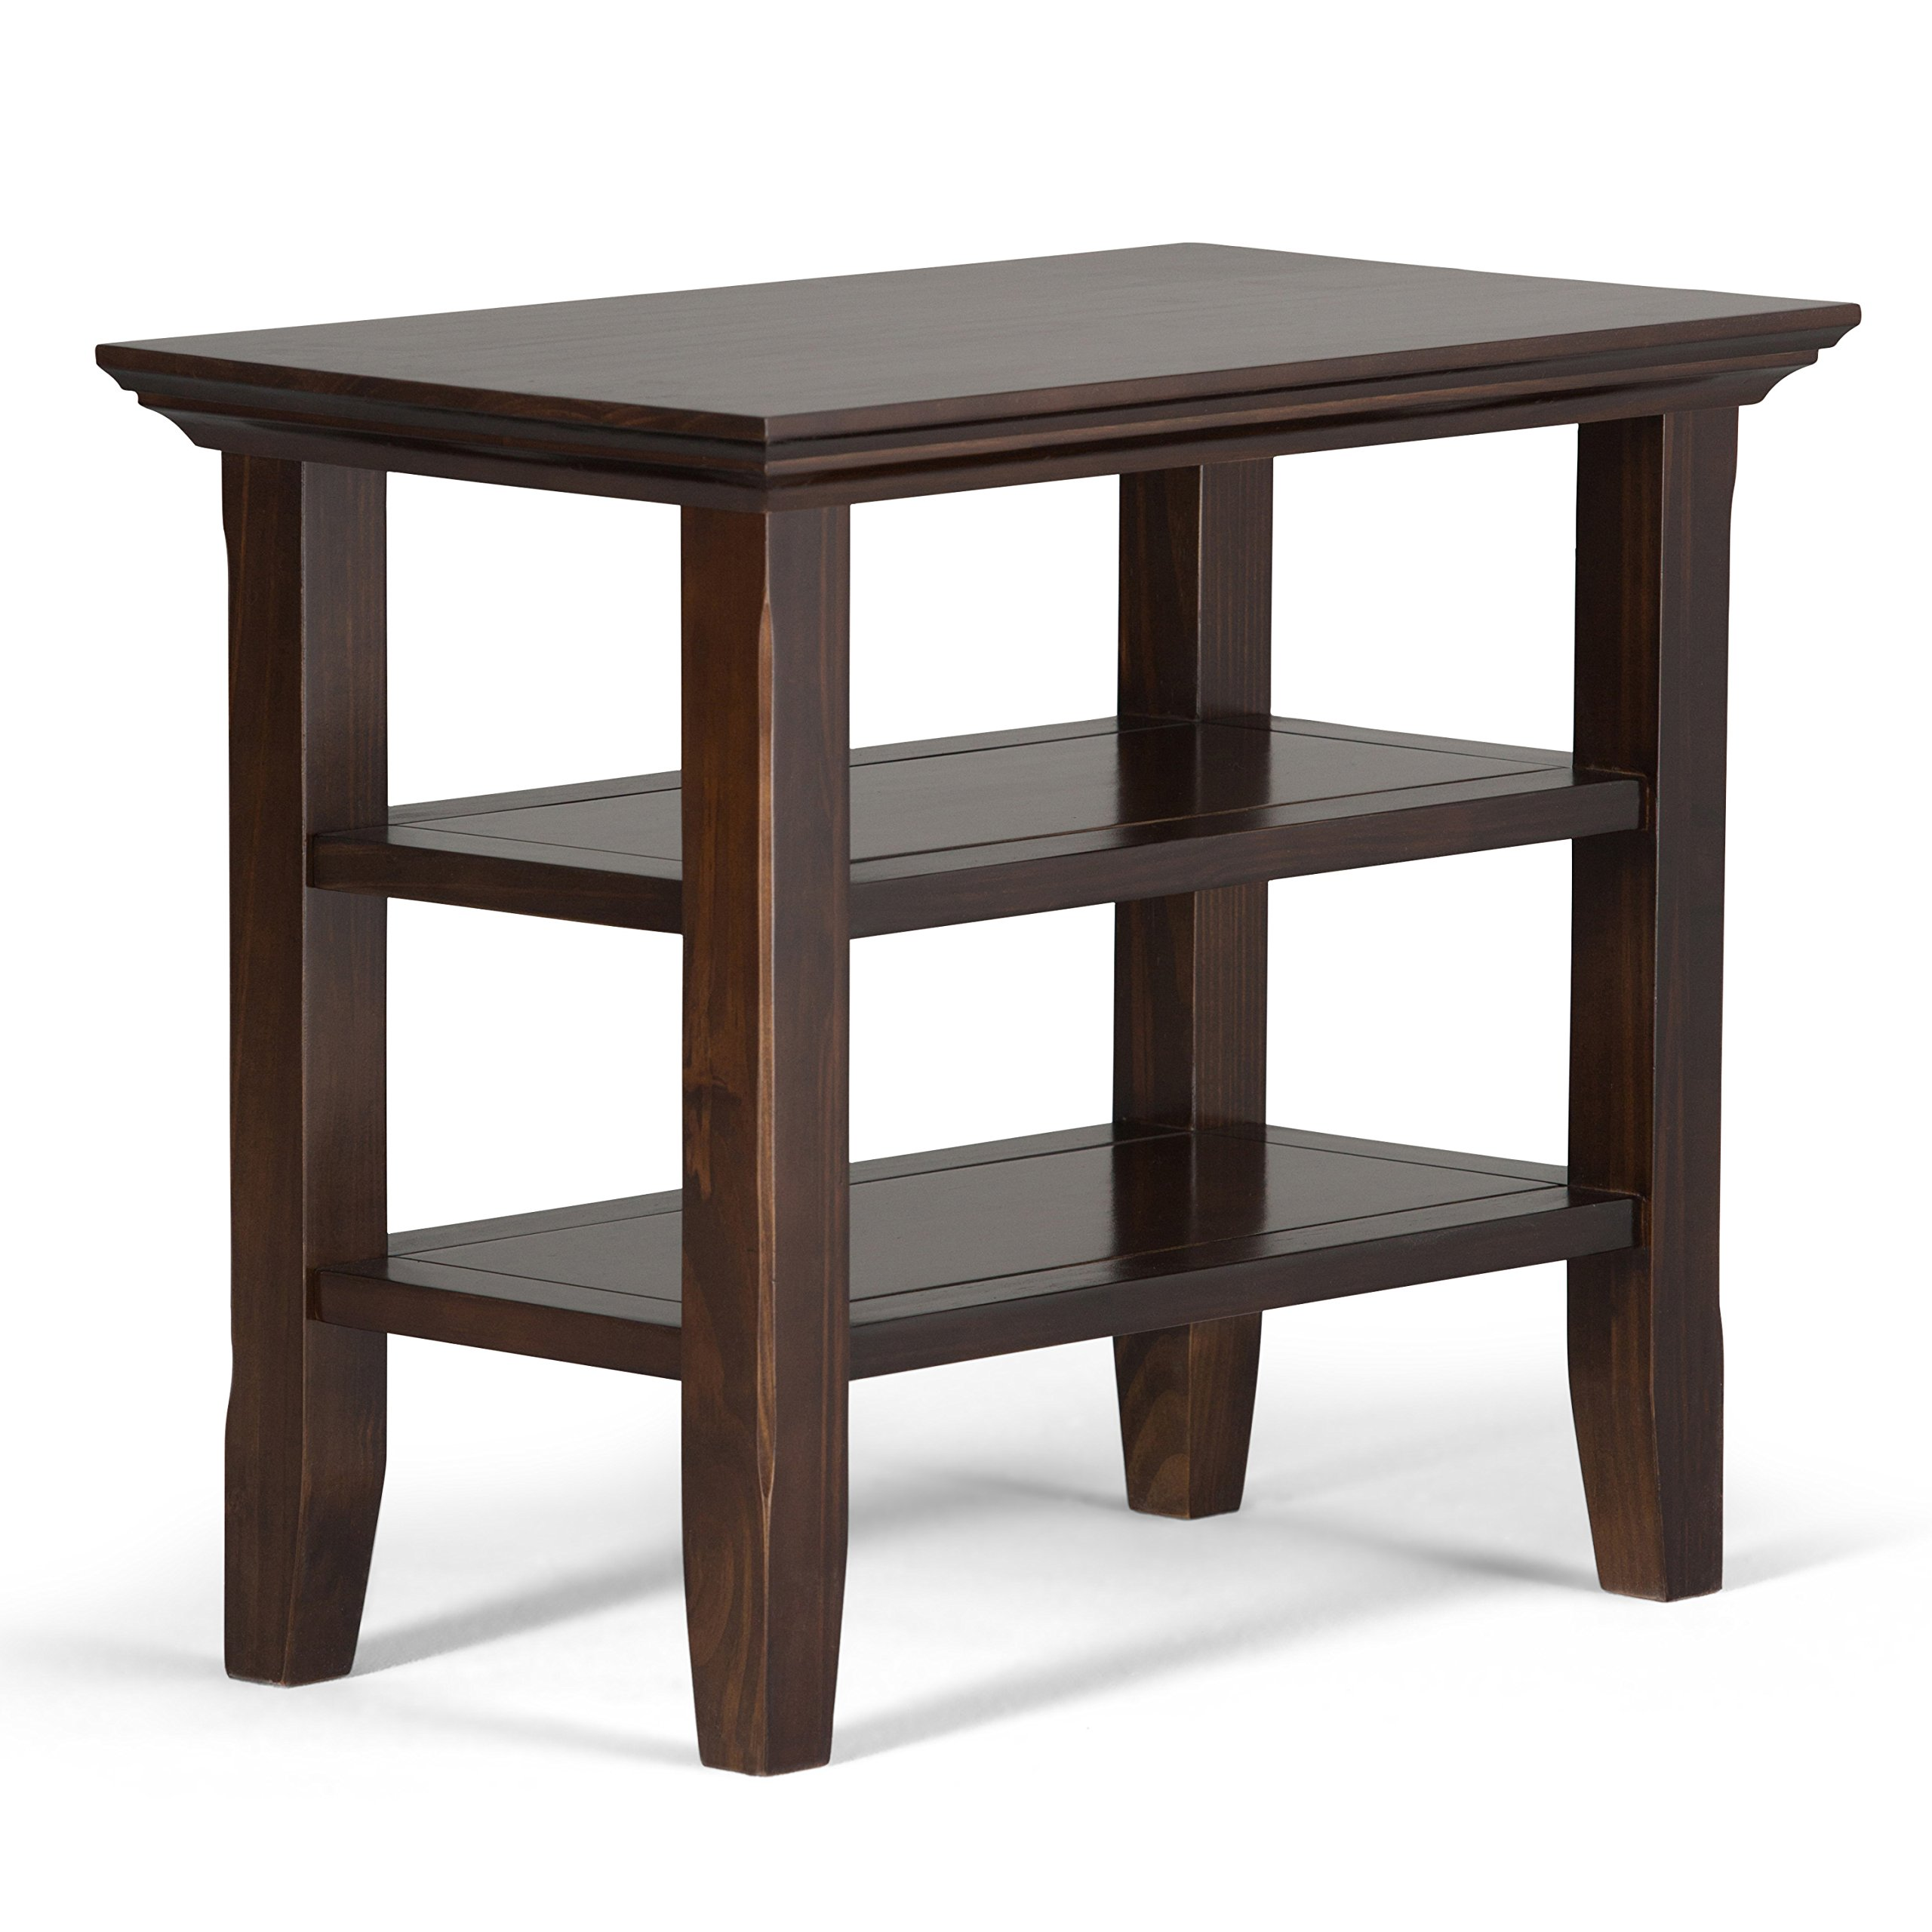 Simpli Home Acadian Solid Wood Narrow Side Table, Tobacco Brown